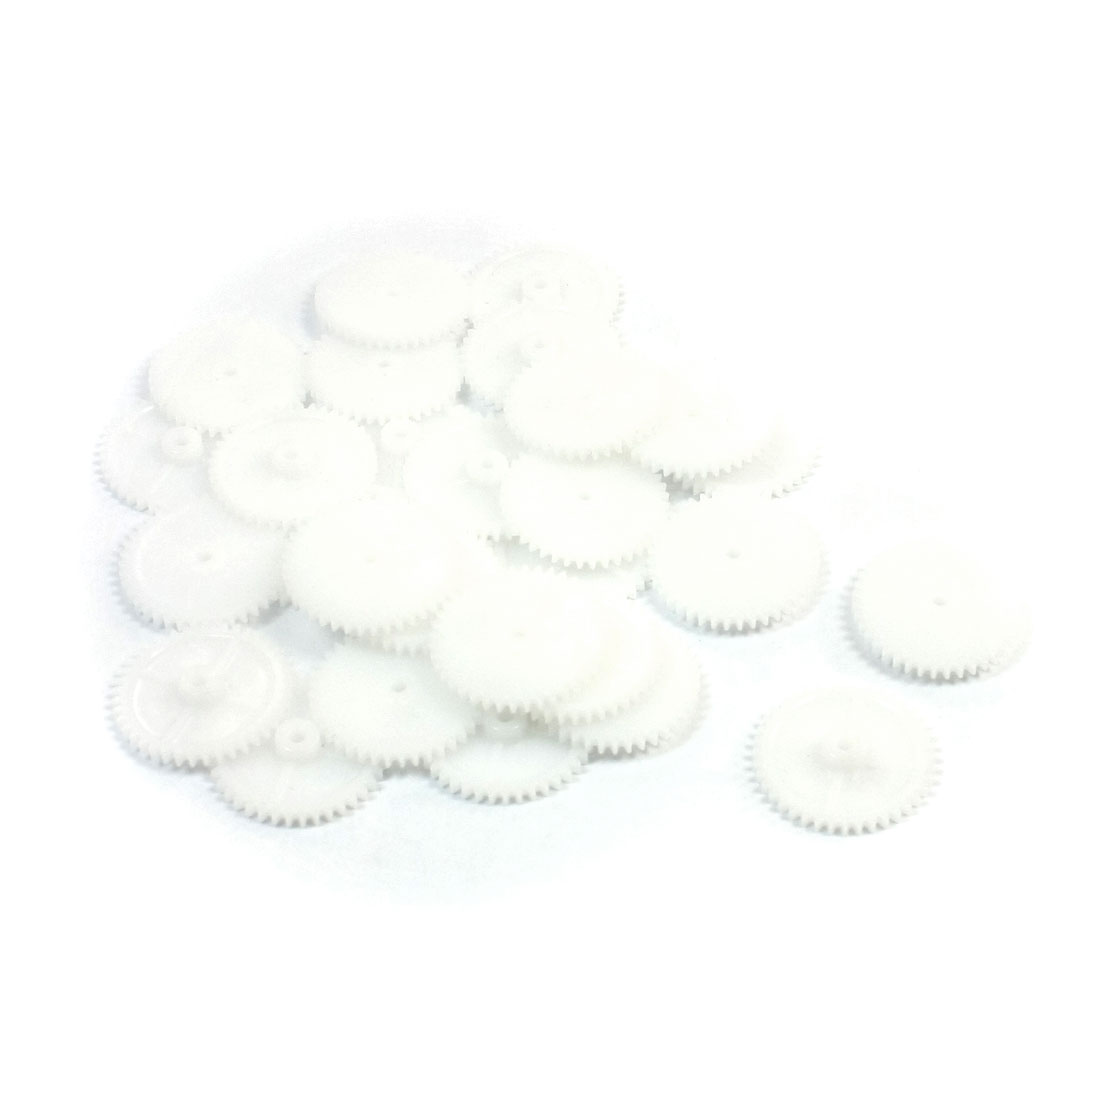 30Pcs 21mmx2mm 0.5 Modulus Plastic Single Reduction Gear for DIY Stepper Motor